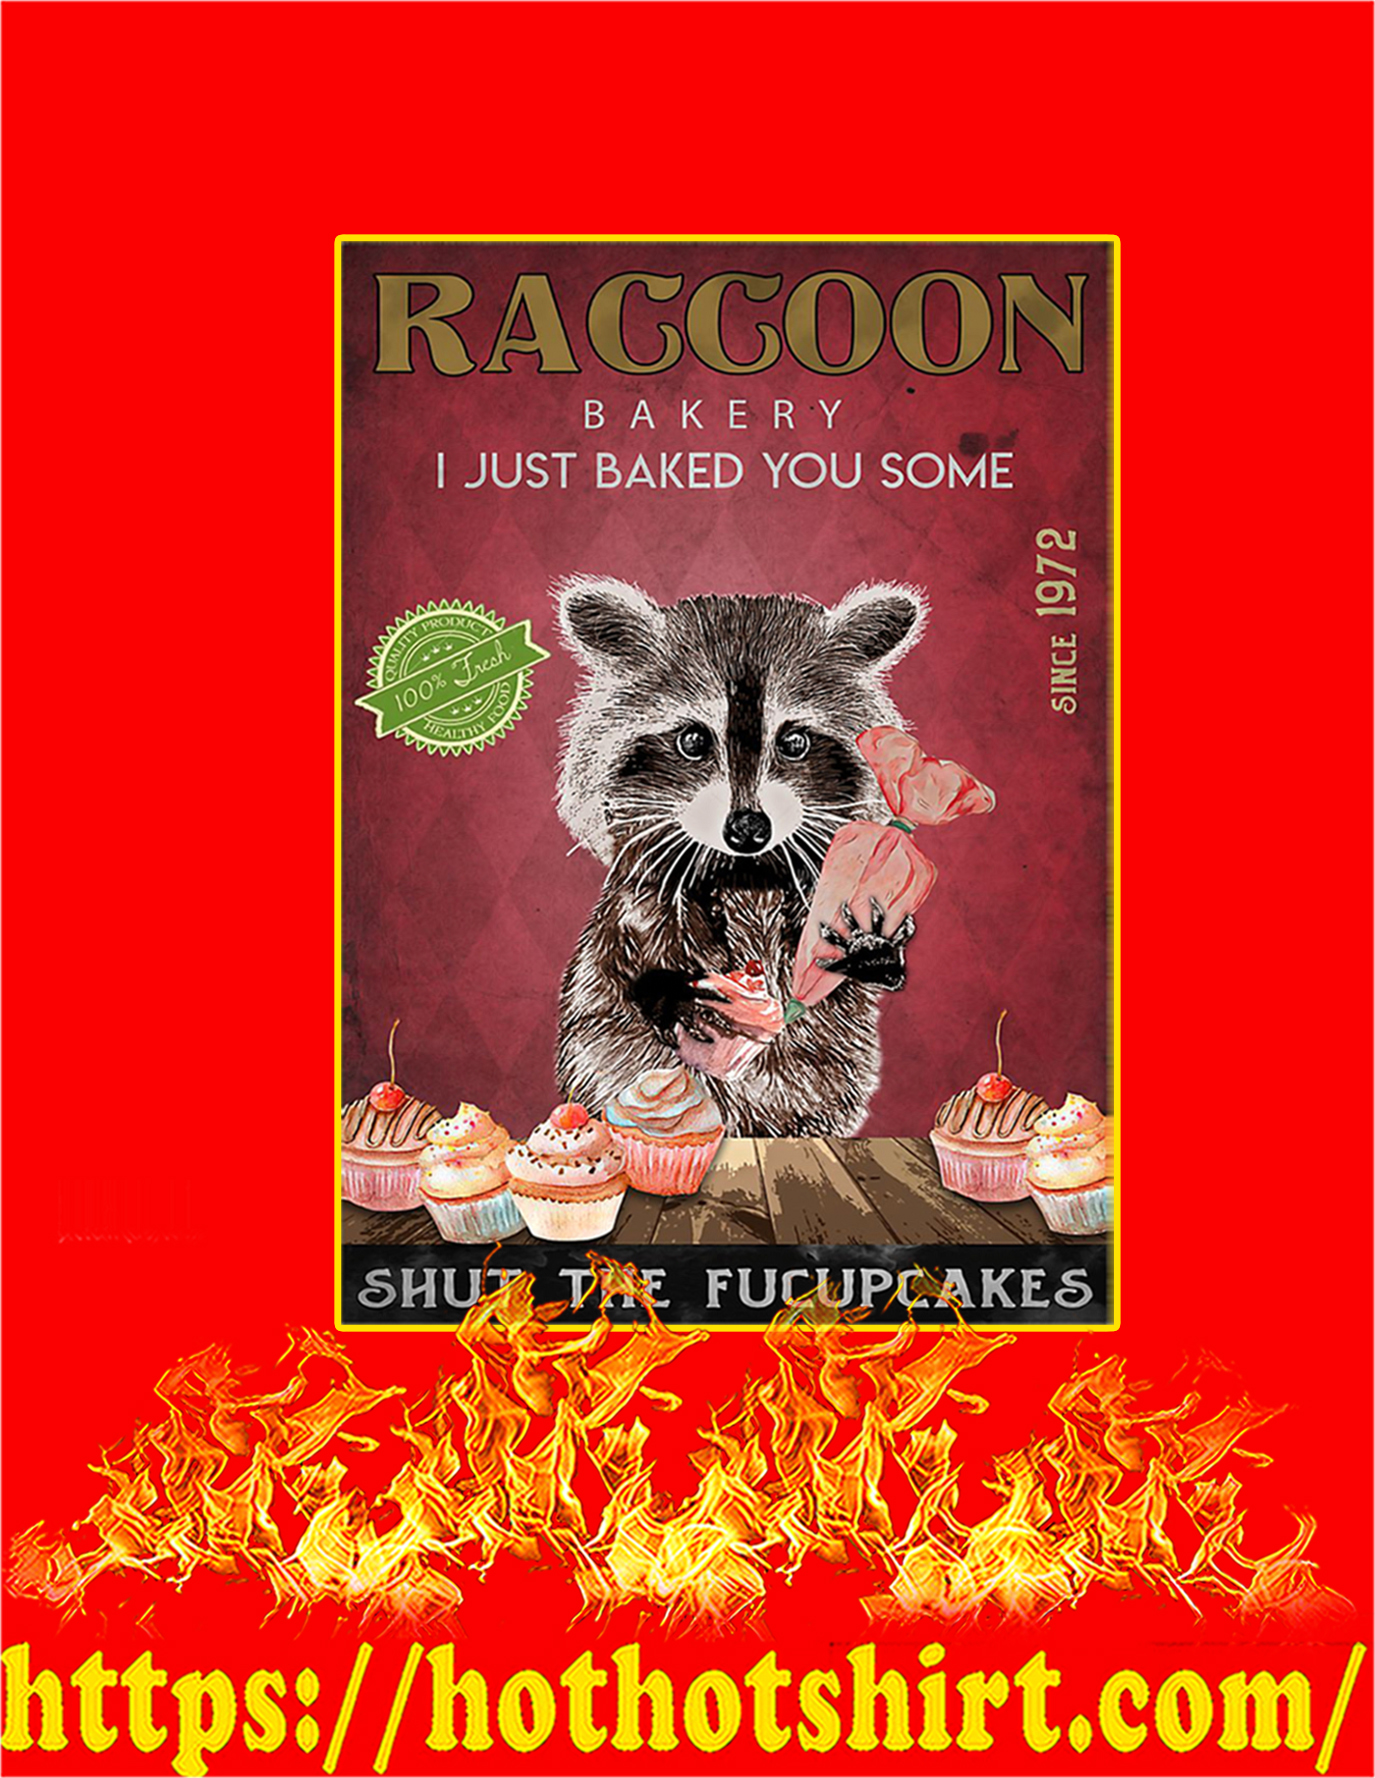 Raccoon bakery shut the fucupcakes poster - A3